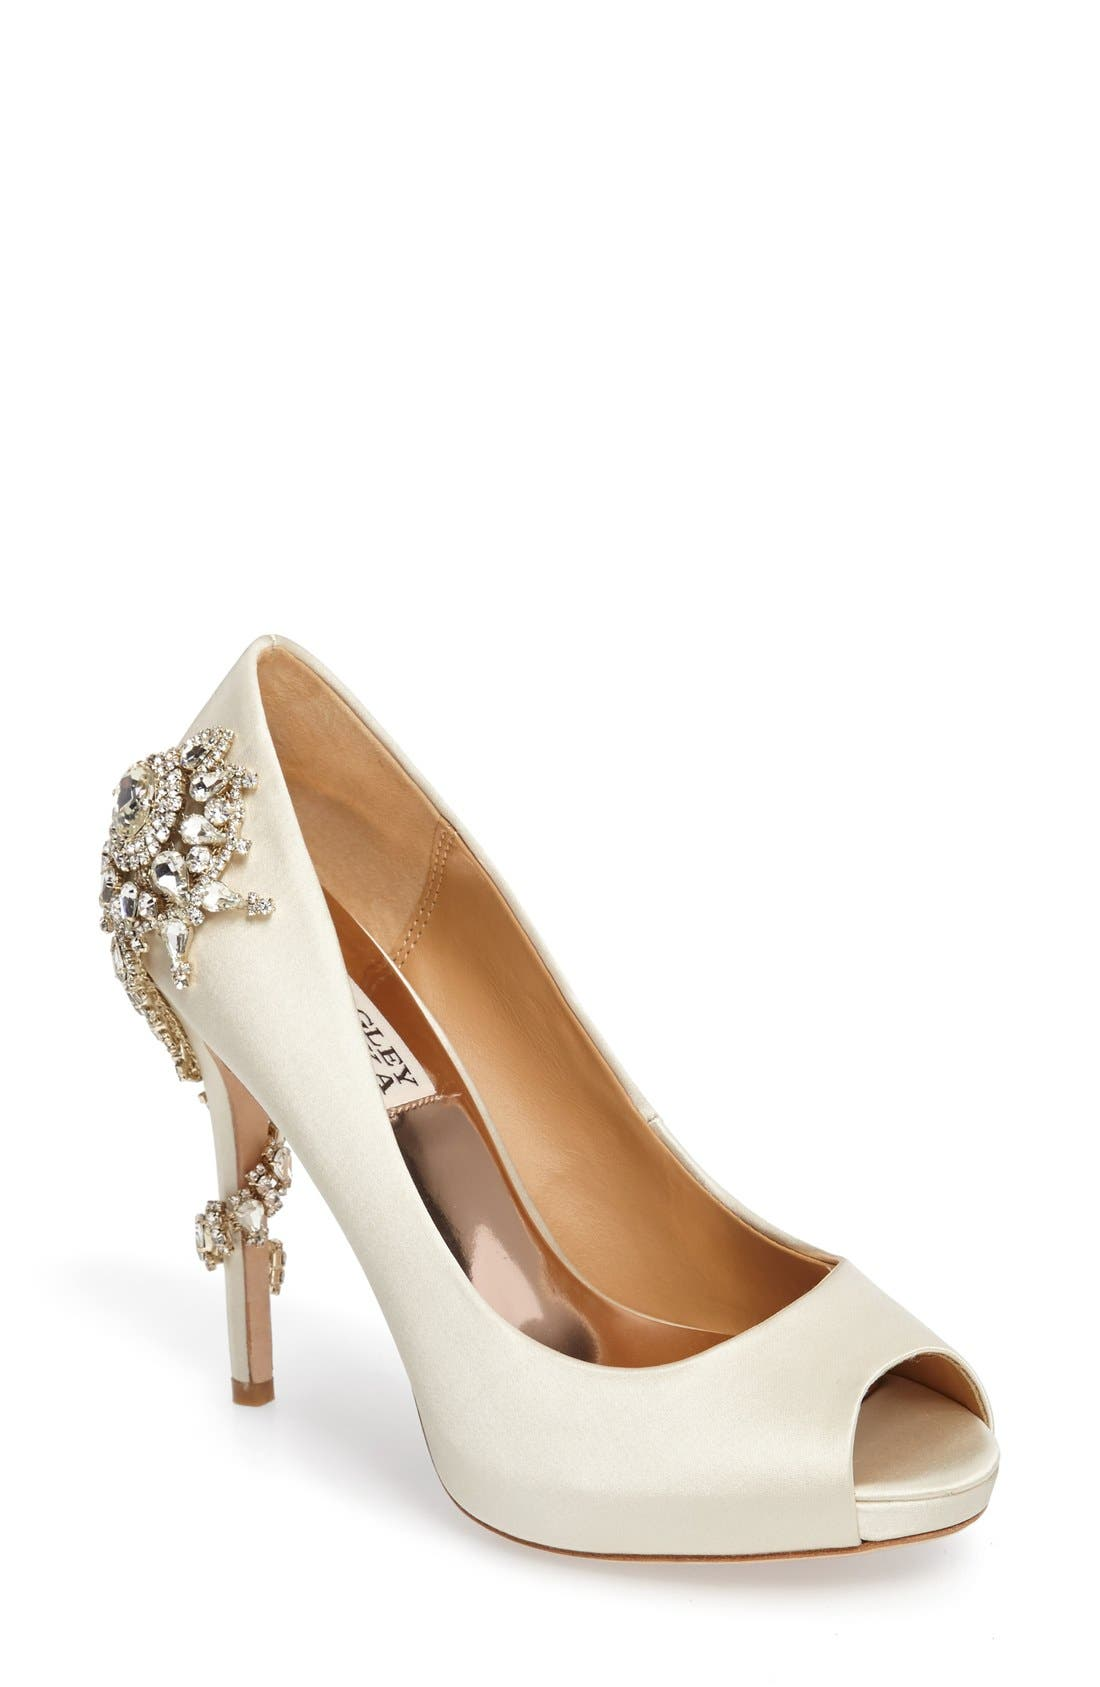 Badgley Mischka Royal Crystal Embellished Peeptoe Pump Women